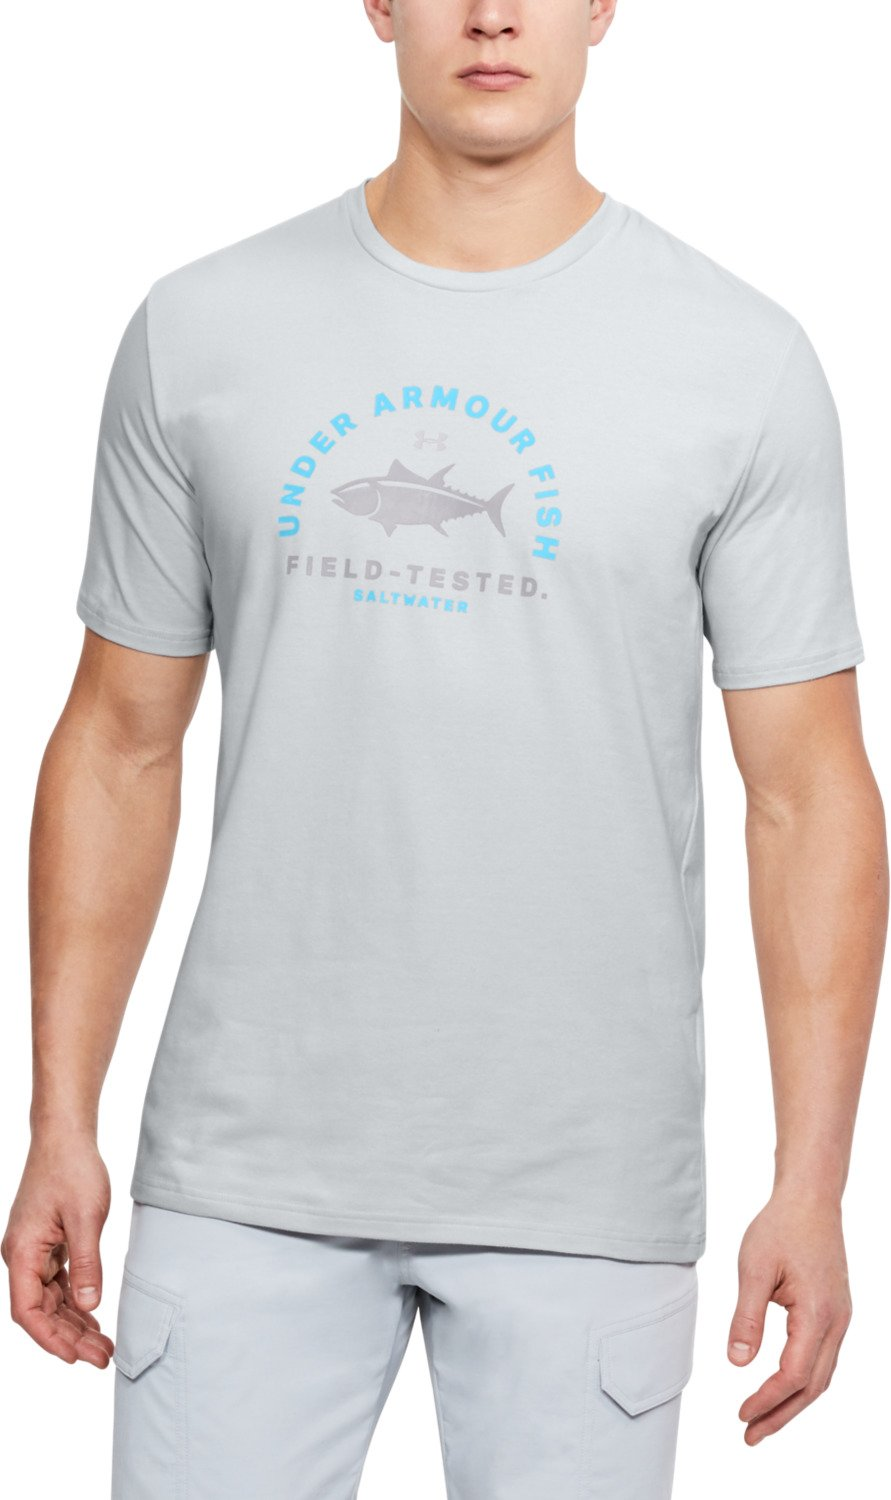 Under Armour Men's Tuna Field Tested T-shirt - view number 1